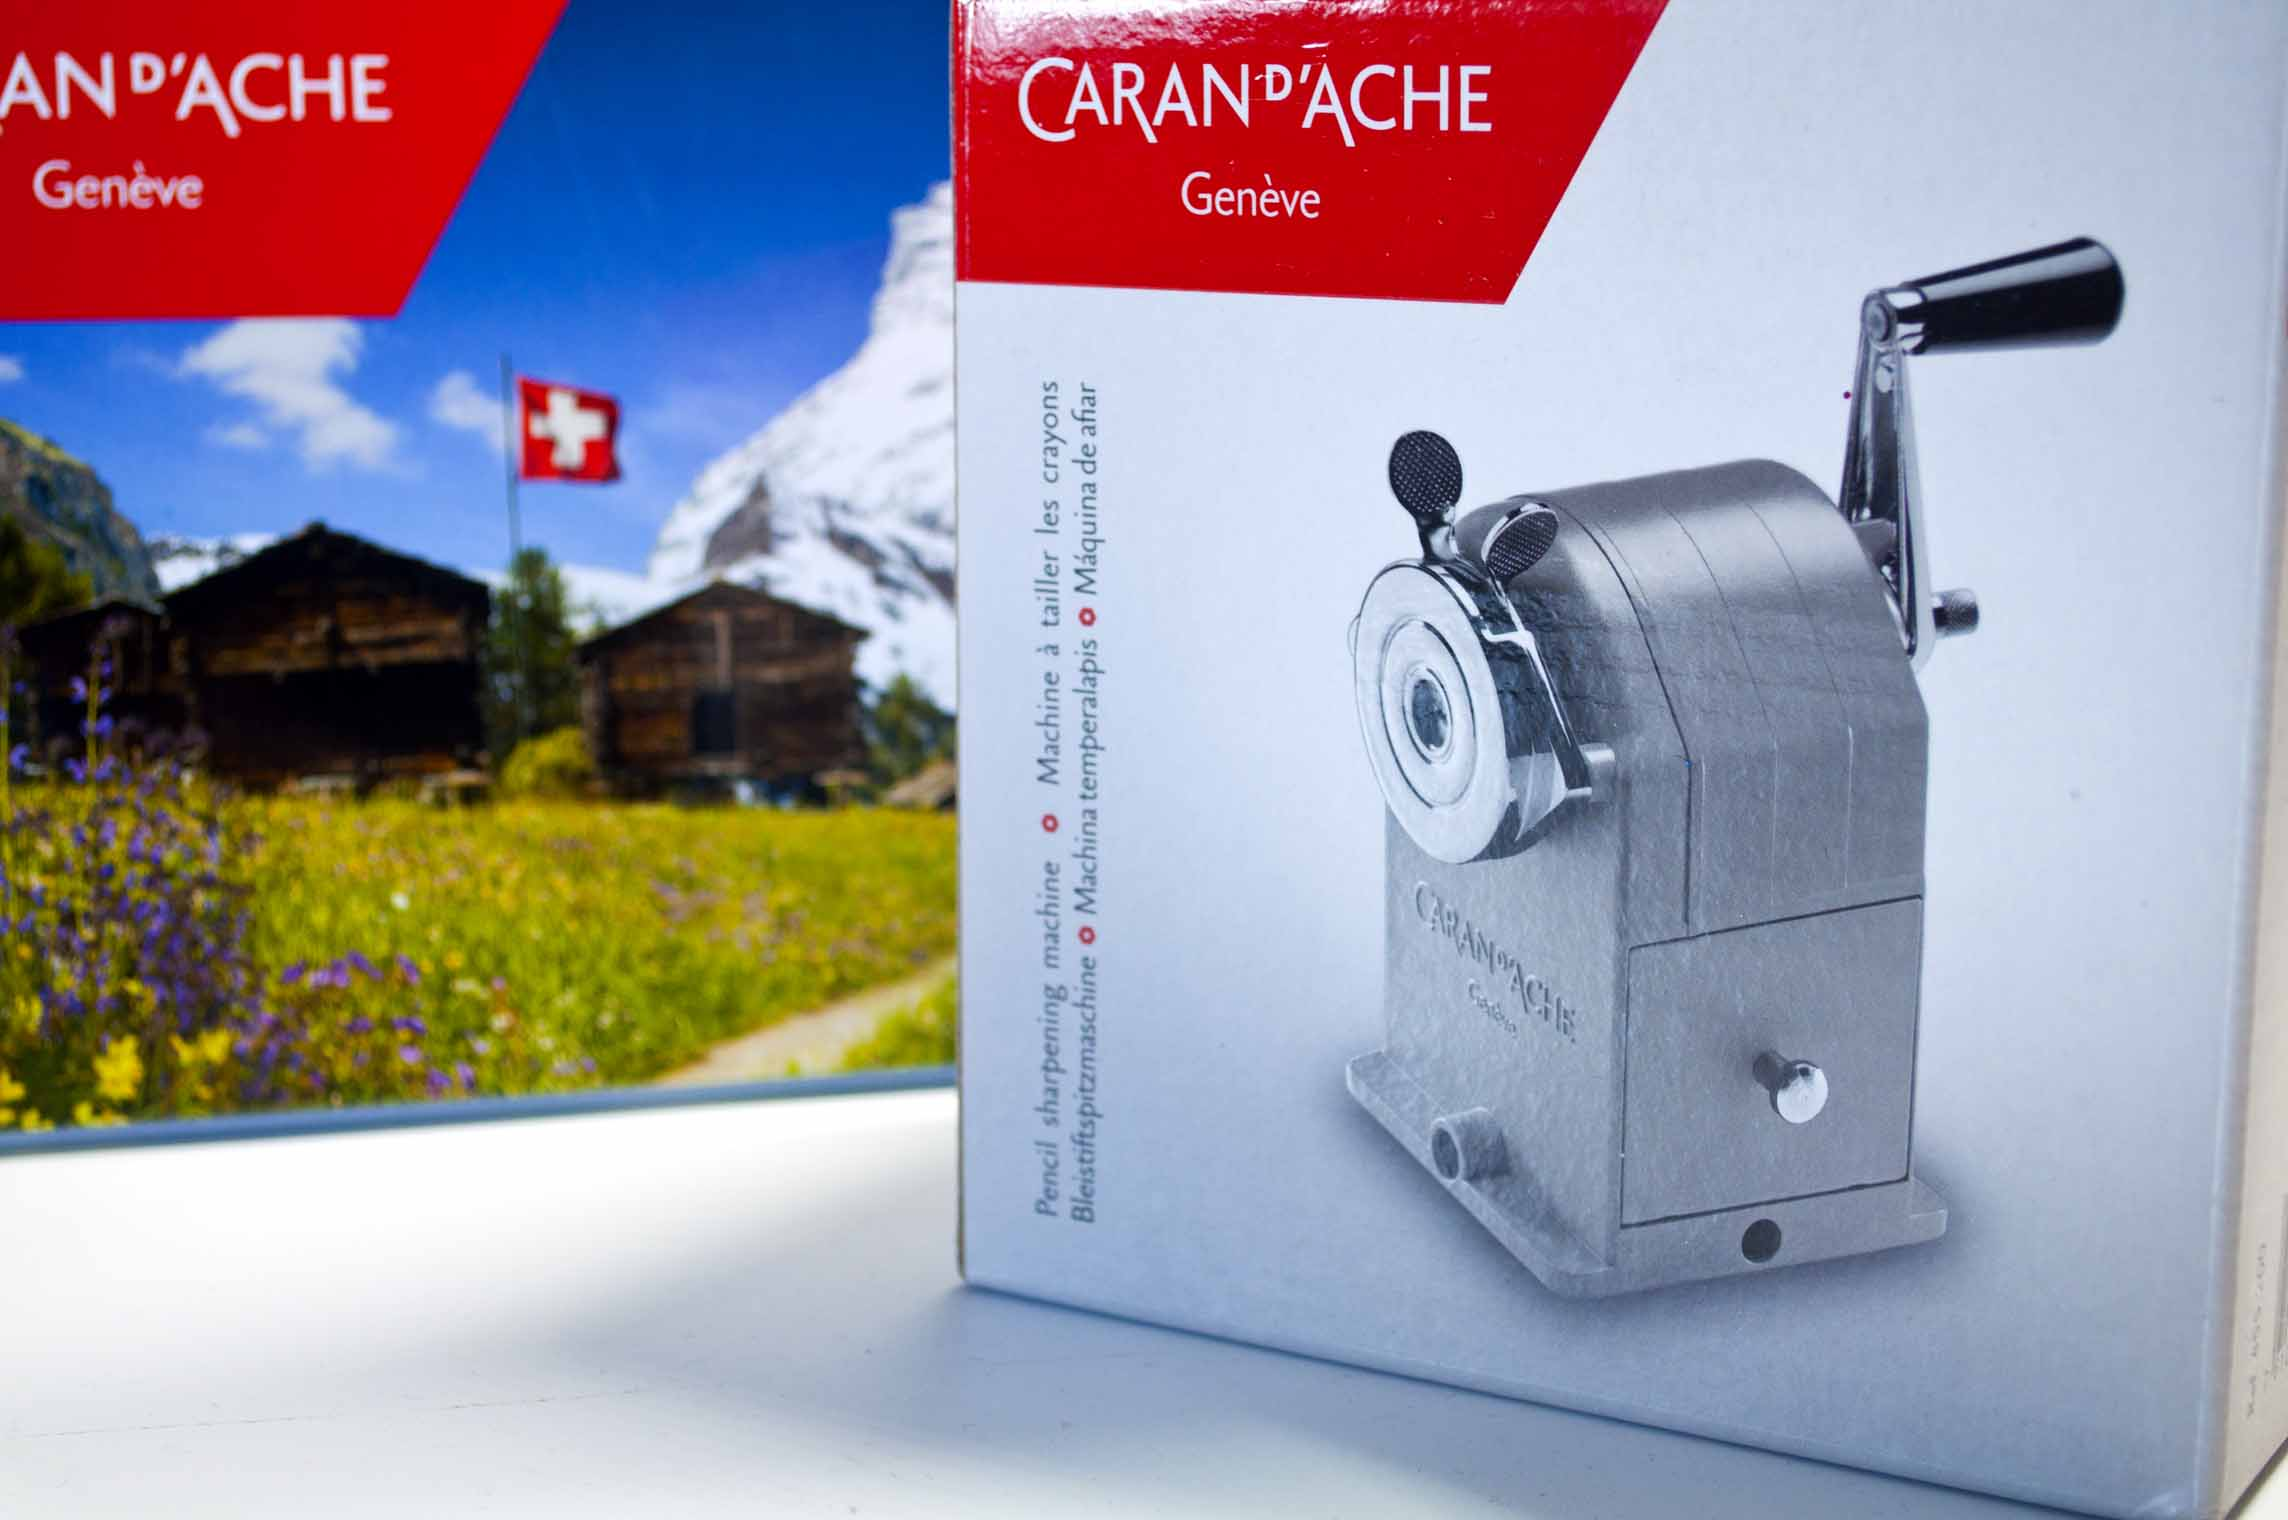 Front Of Caran d'Ache Sharpener Box